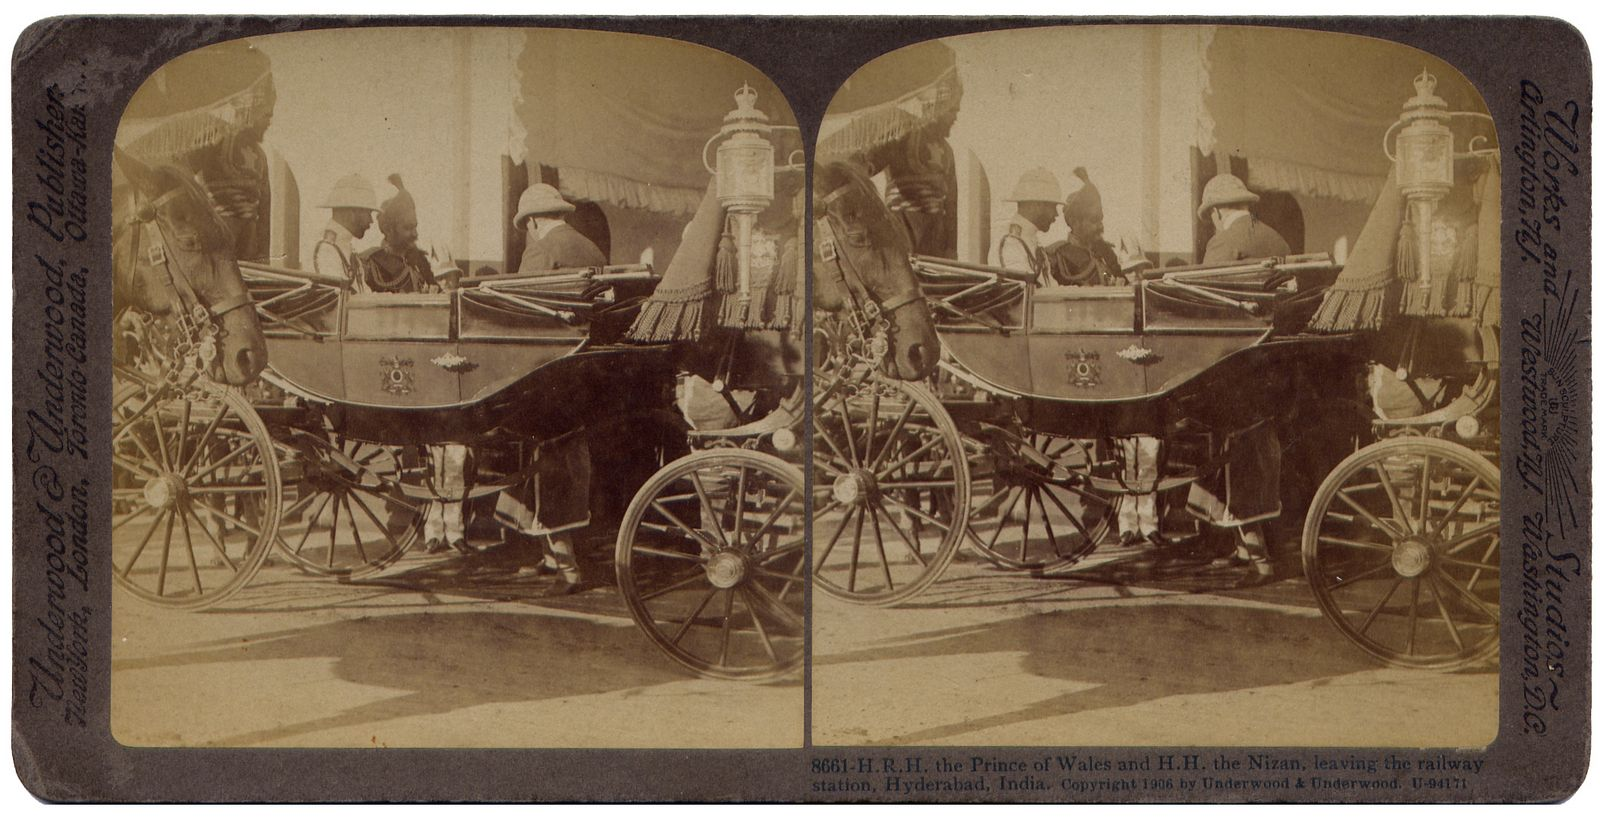 The Prince of Wales and the Nizam, leaving the railway station Hyderabad India